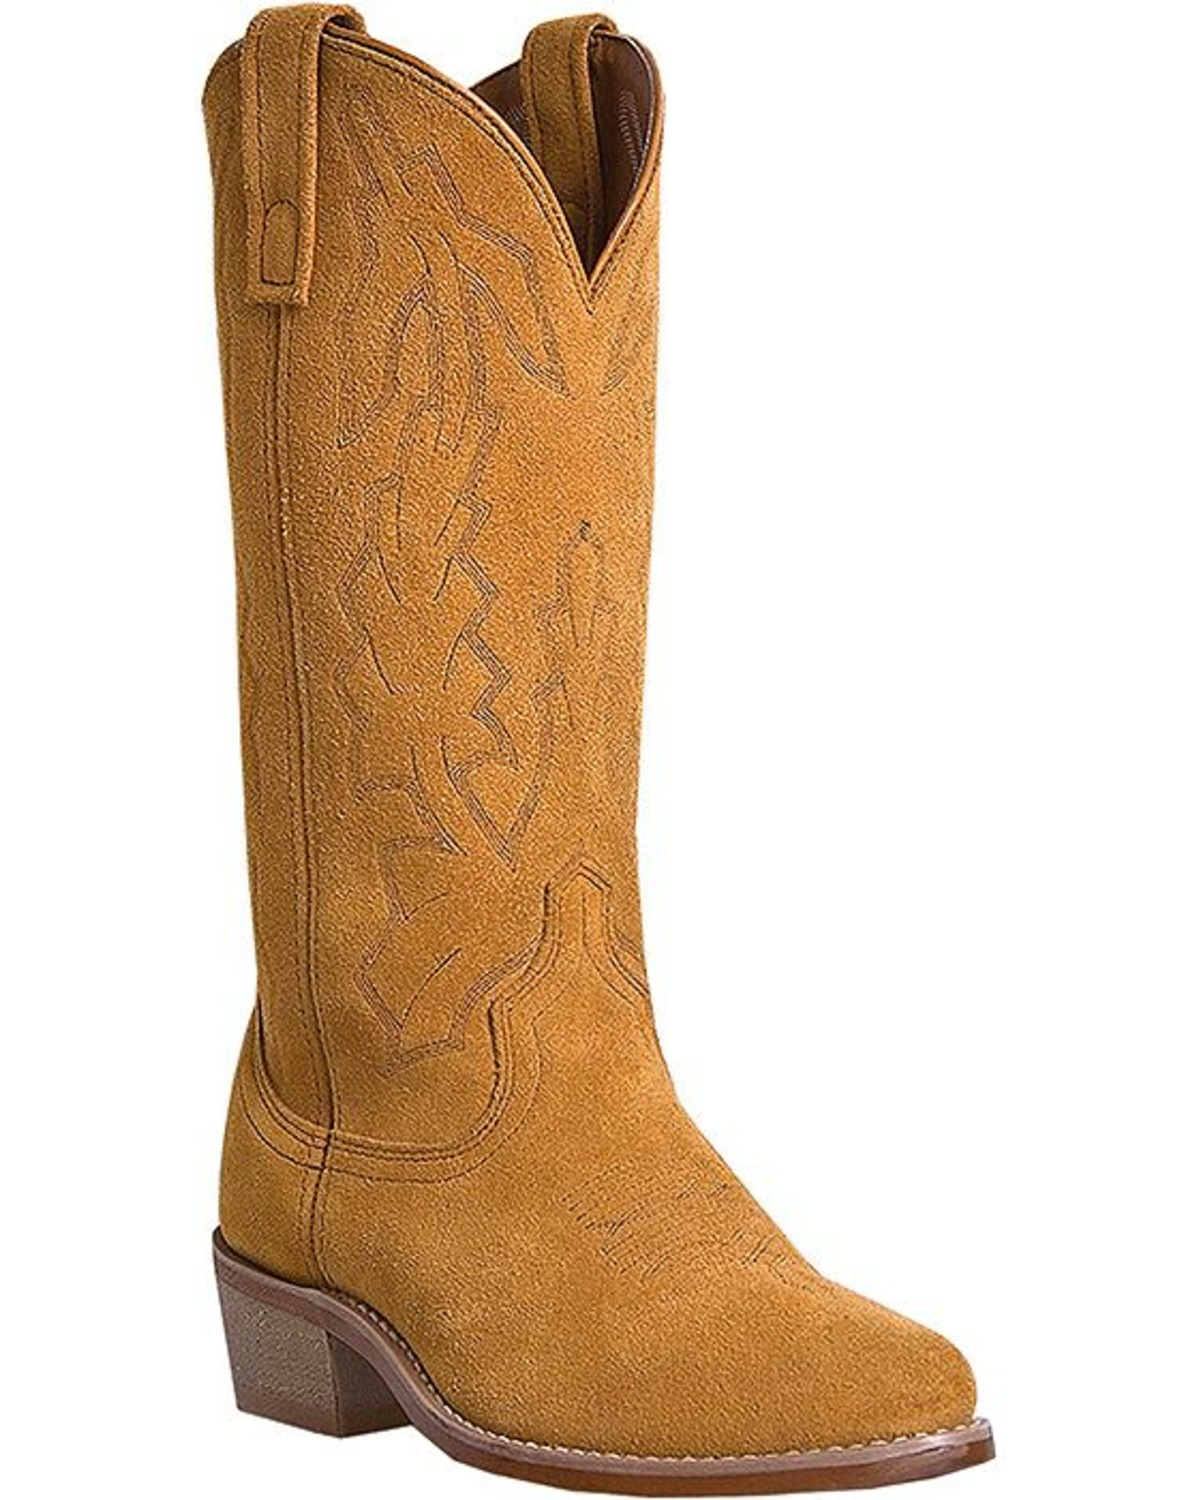 Laredo men 39 s jacksonville western boots boot barn for International decor outlet jacksonville